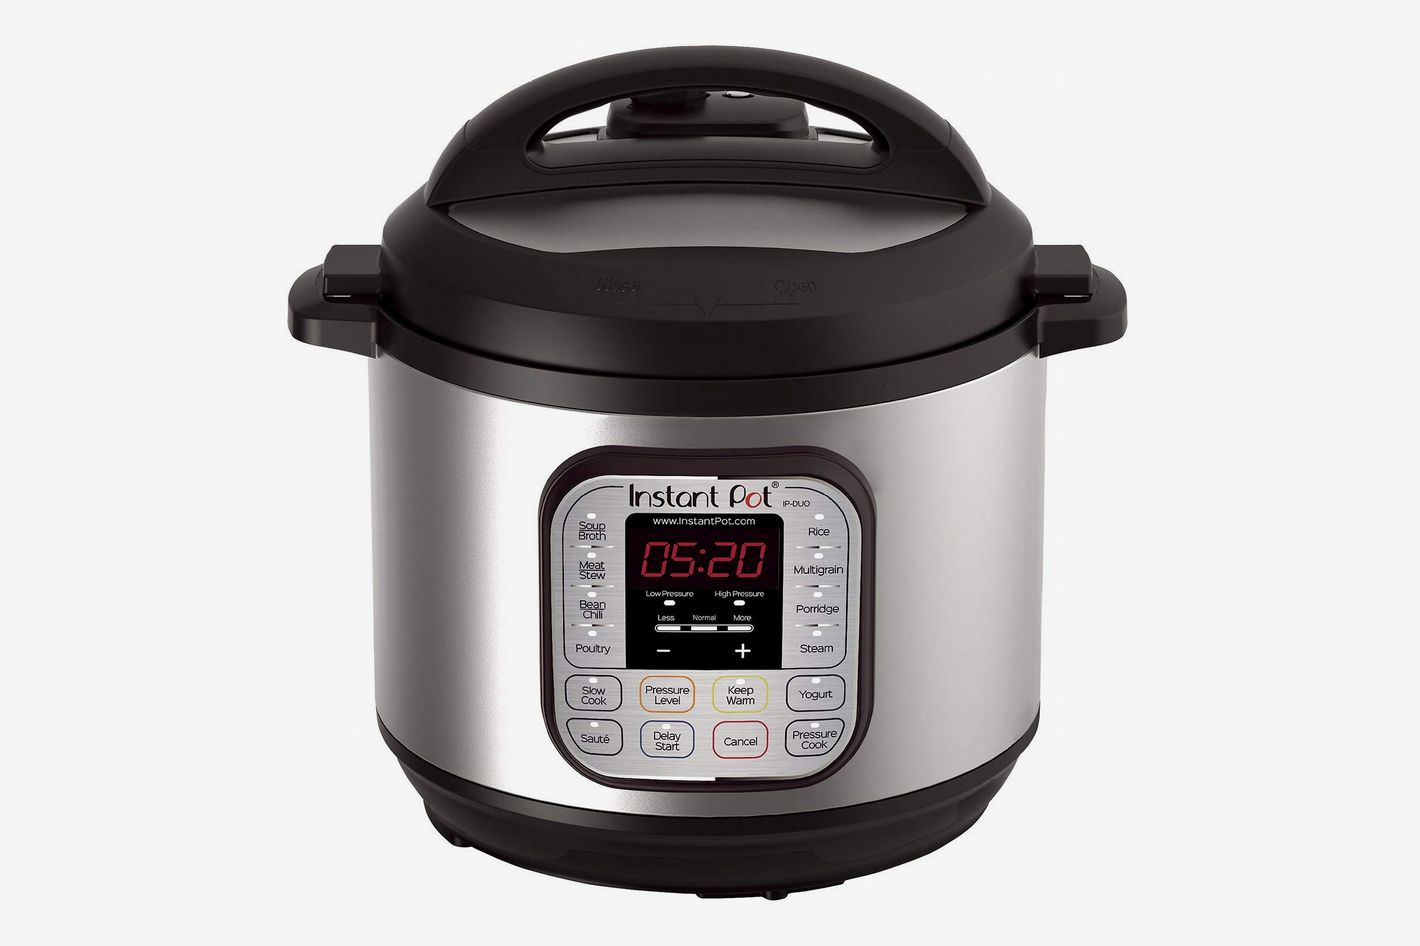 Best Black Friday Kitchen And Liance Deals Instant Pot Duo80 8 Qt 7 In 1 Multi Use Programmable Pressure Cooker